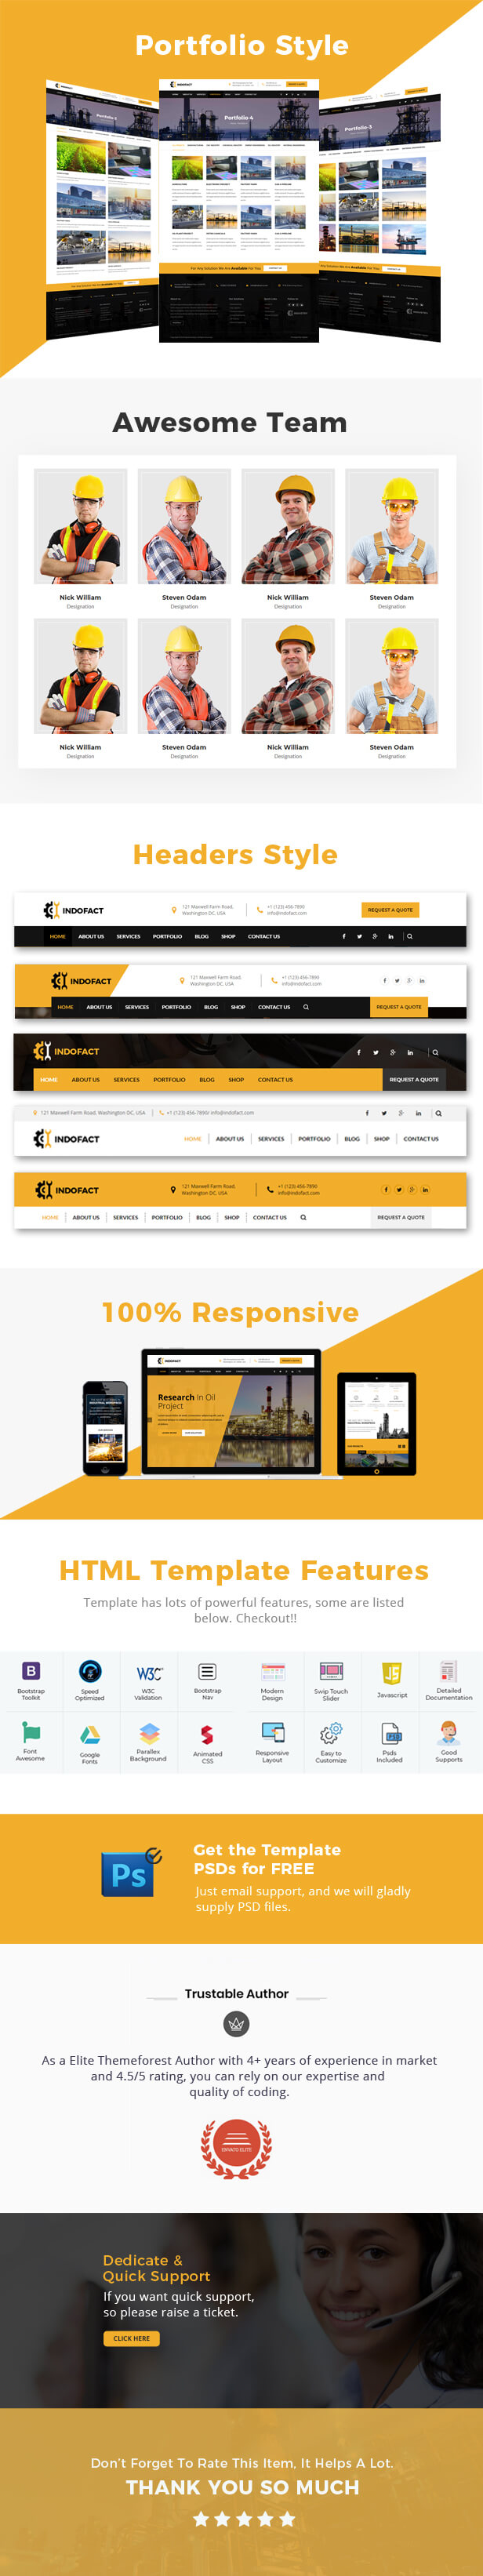 Indofact - Industry, Factory and Engineering HTML 5 Template - 2